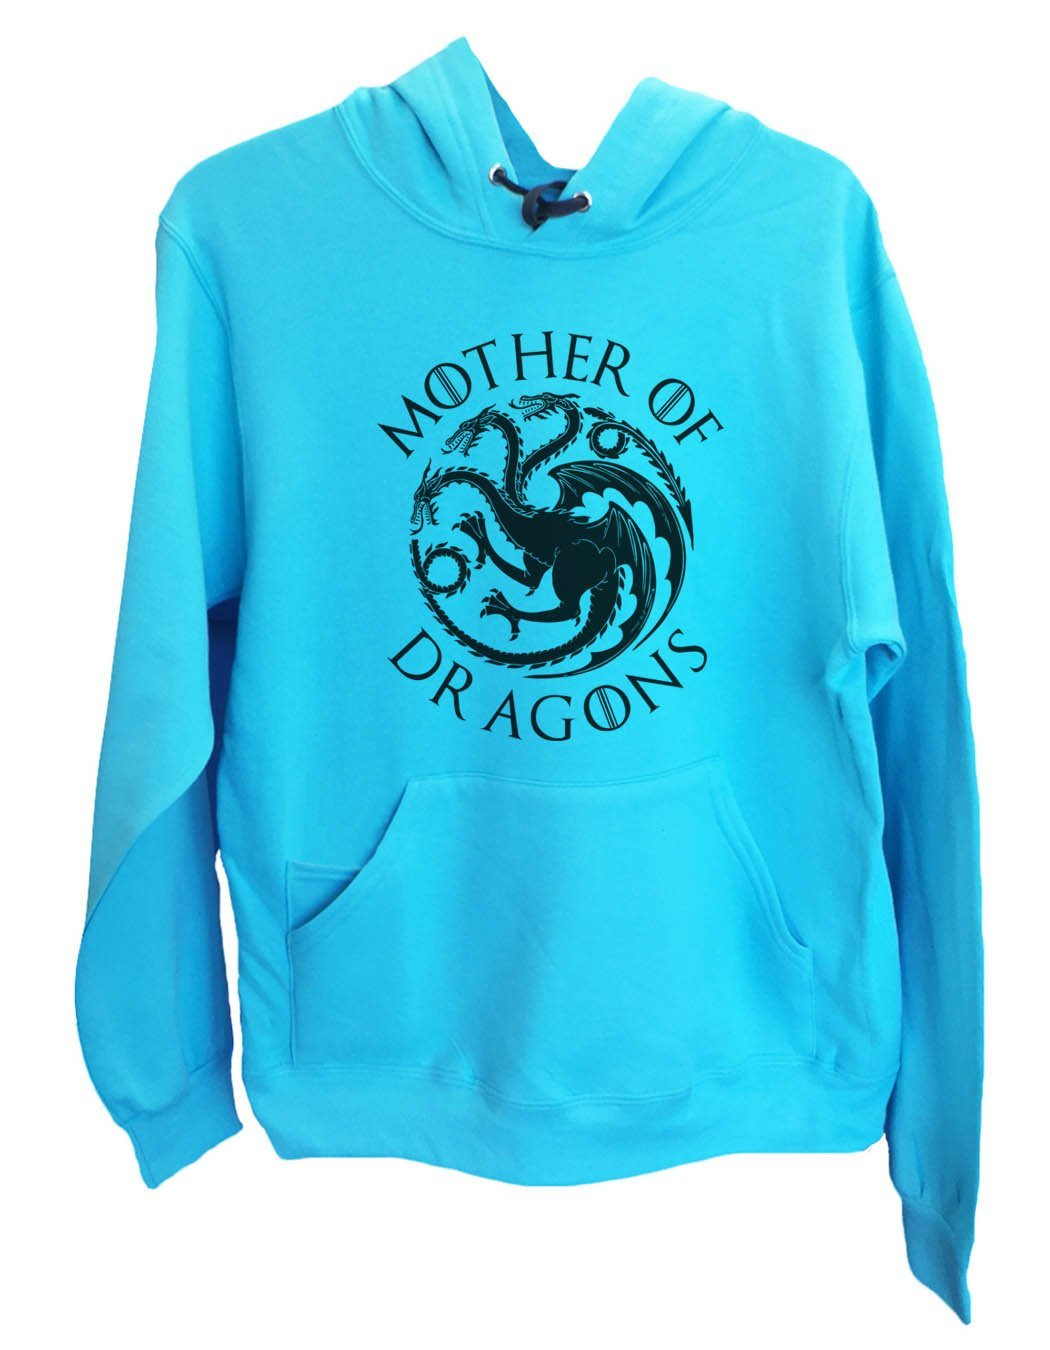 UNISEX HOODIE - Mother Of Dragons - FUNNY MENS AND WOMENS HOODED SWEATSHIRTS - BB15 Funny Shirt Small / Turquoise